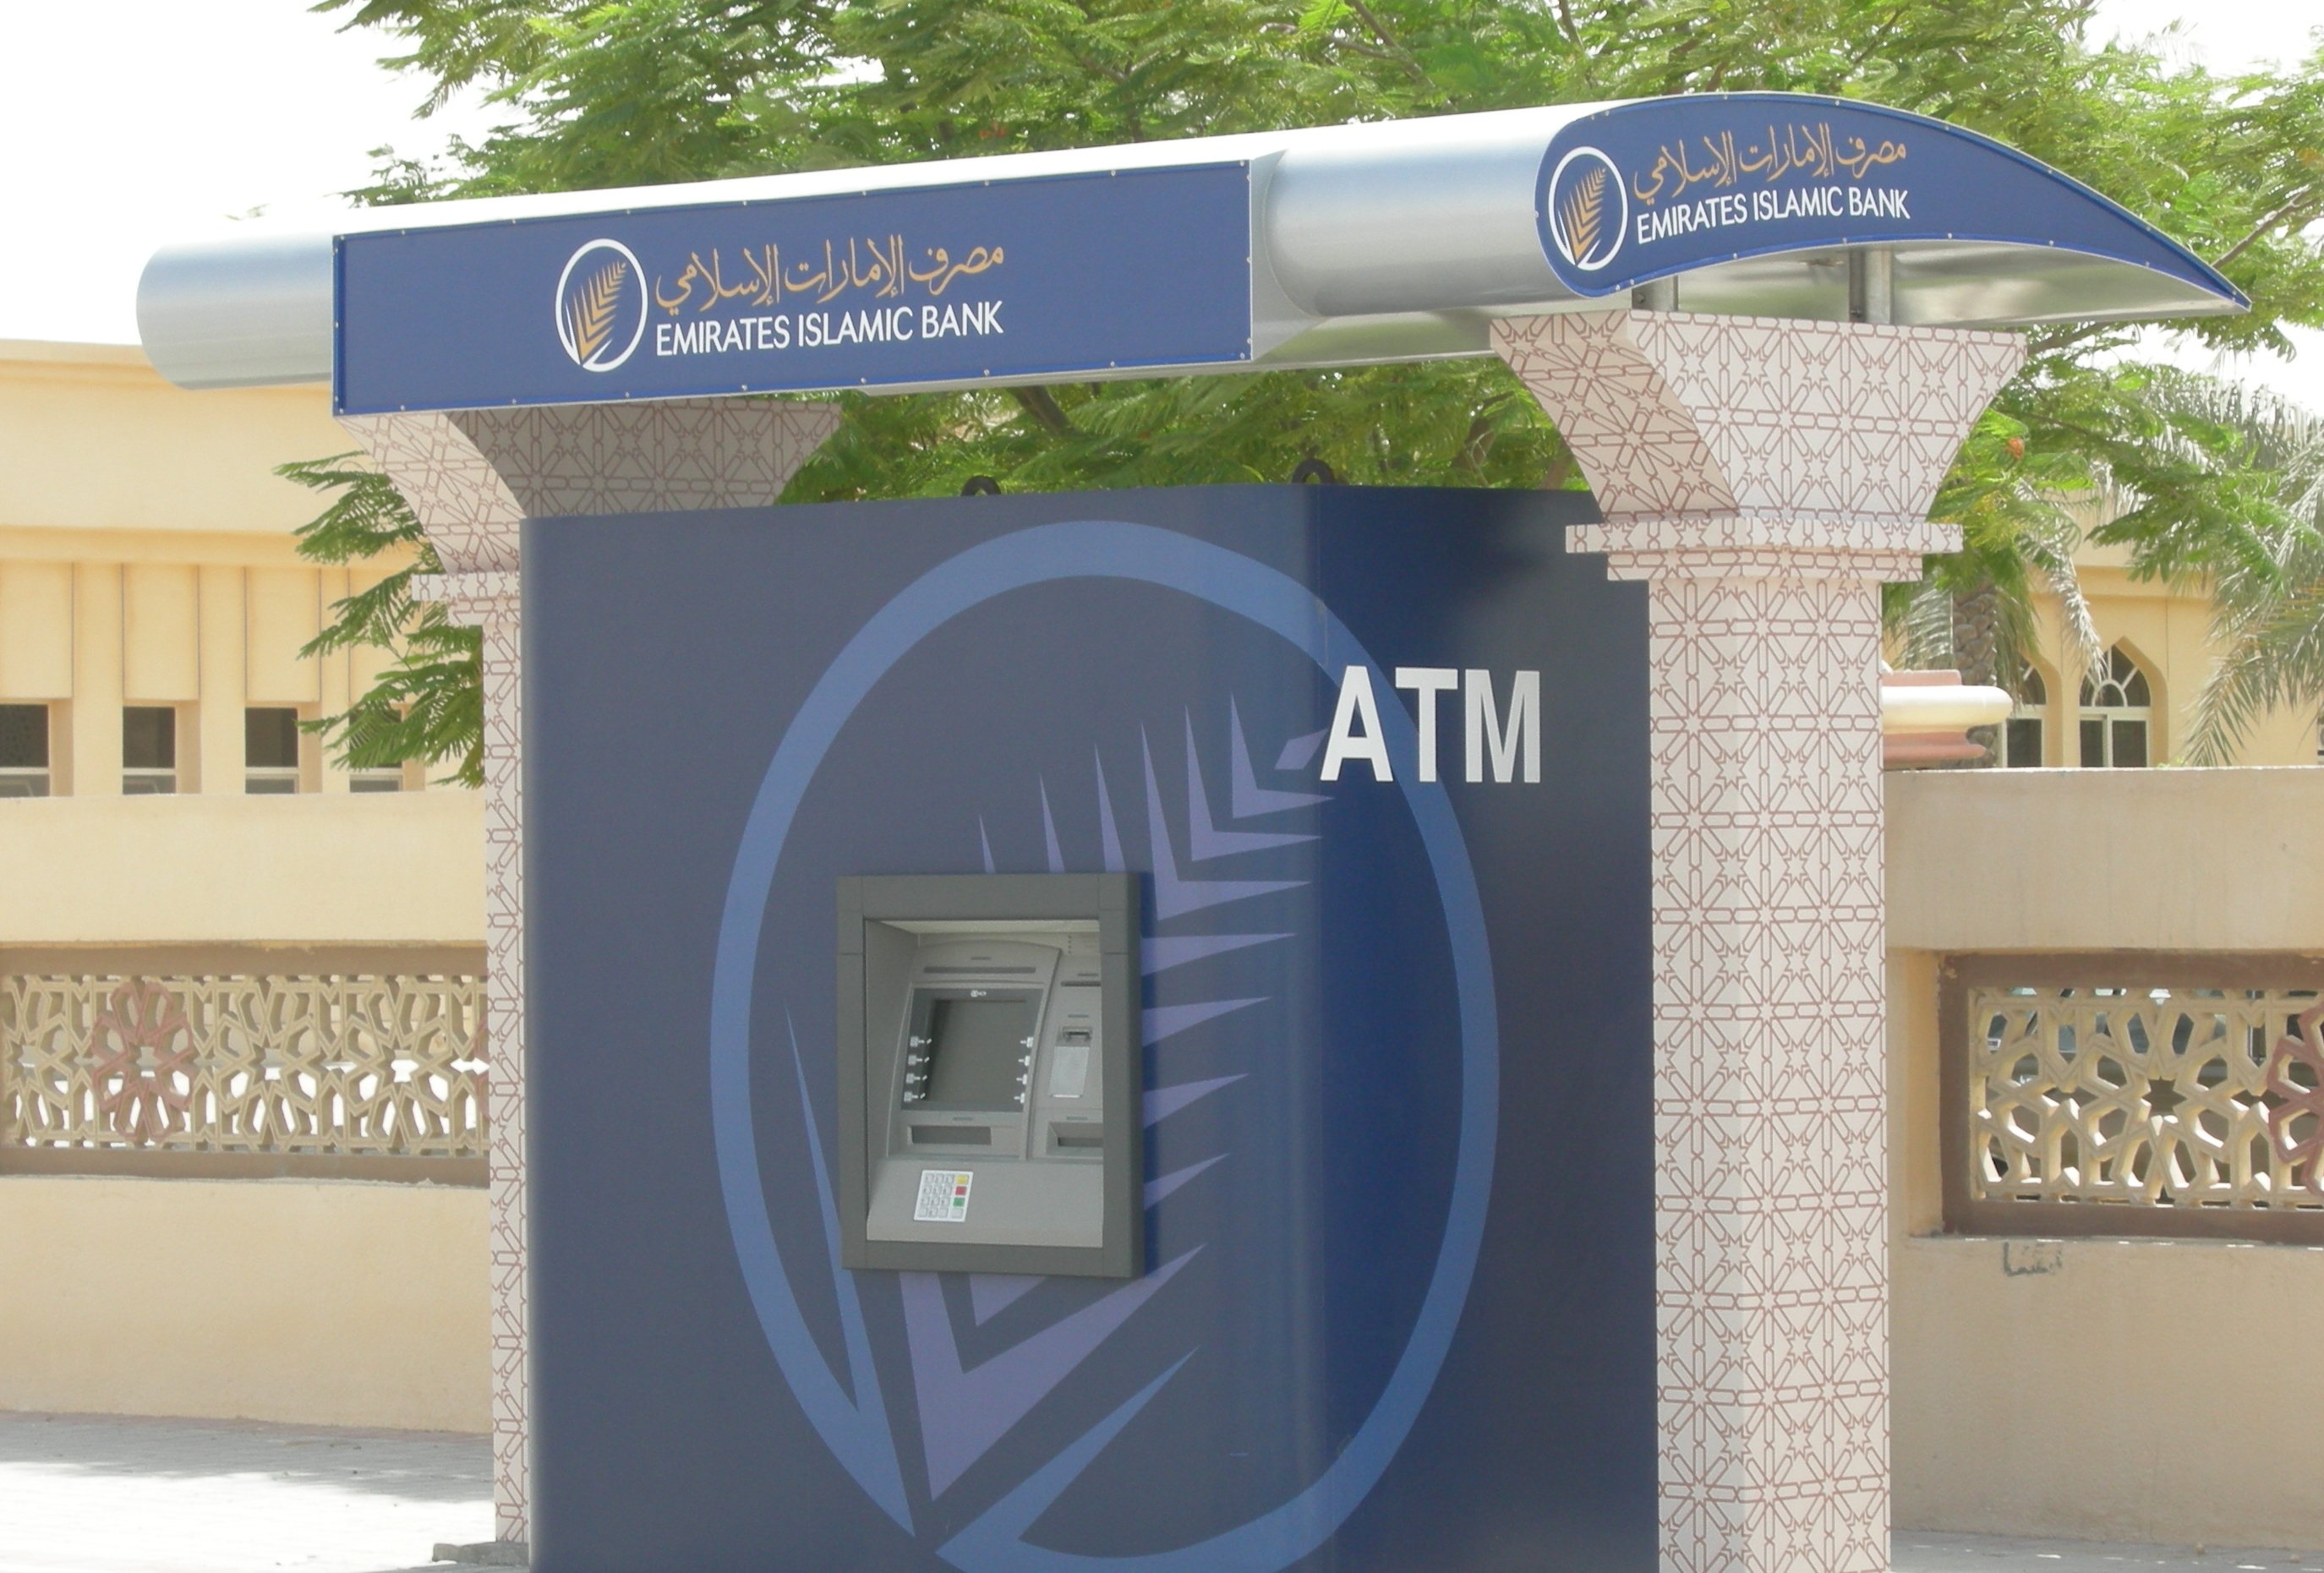 <h2>Emirates Islamic - ATM</h2><br/>